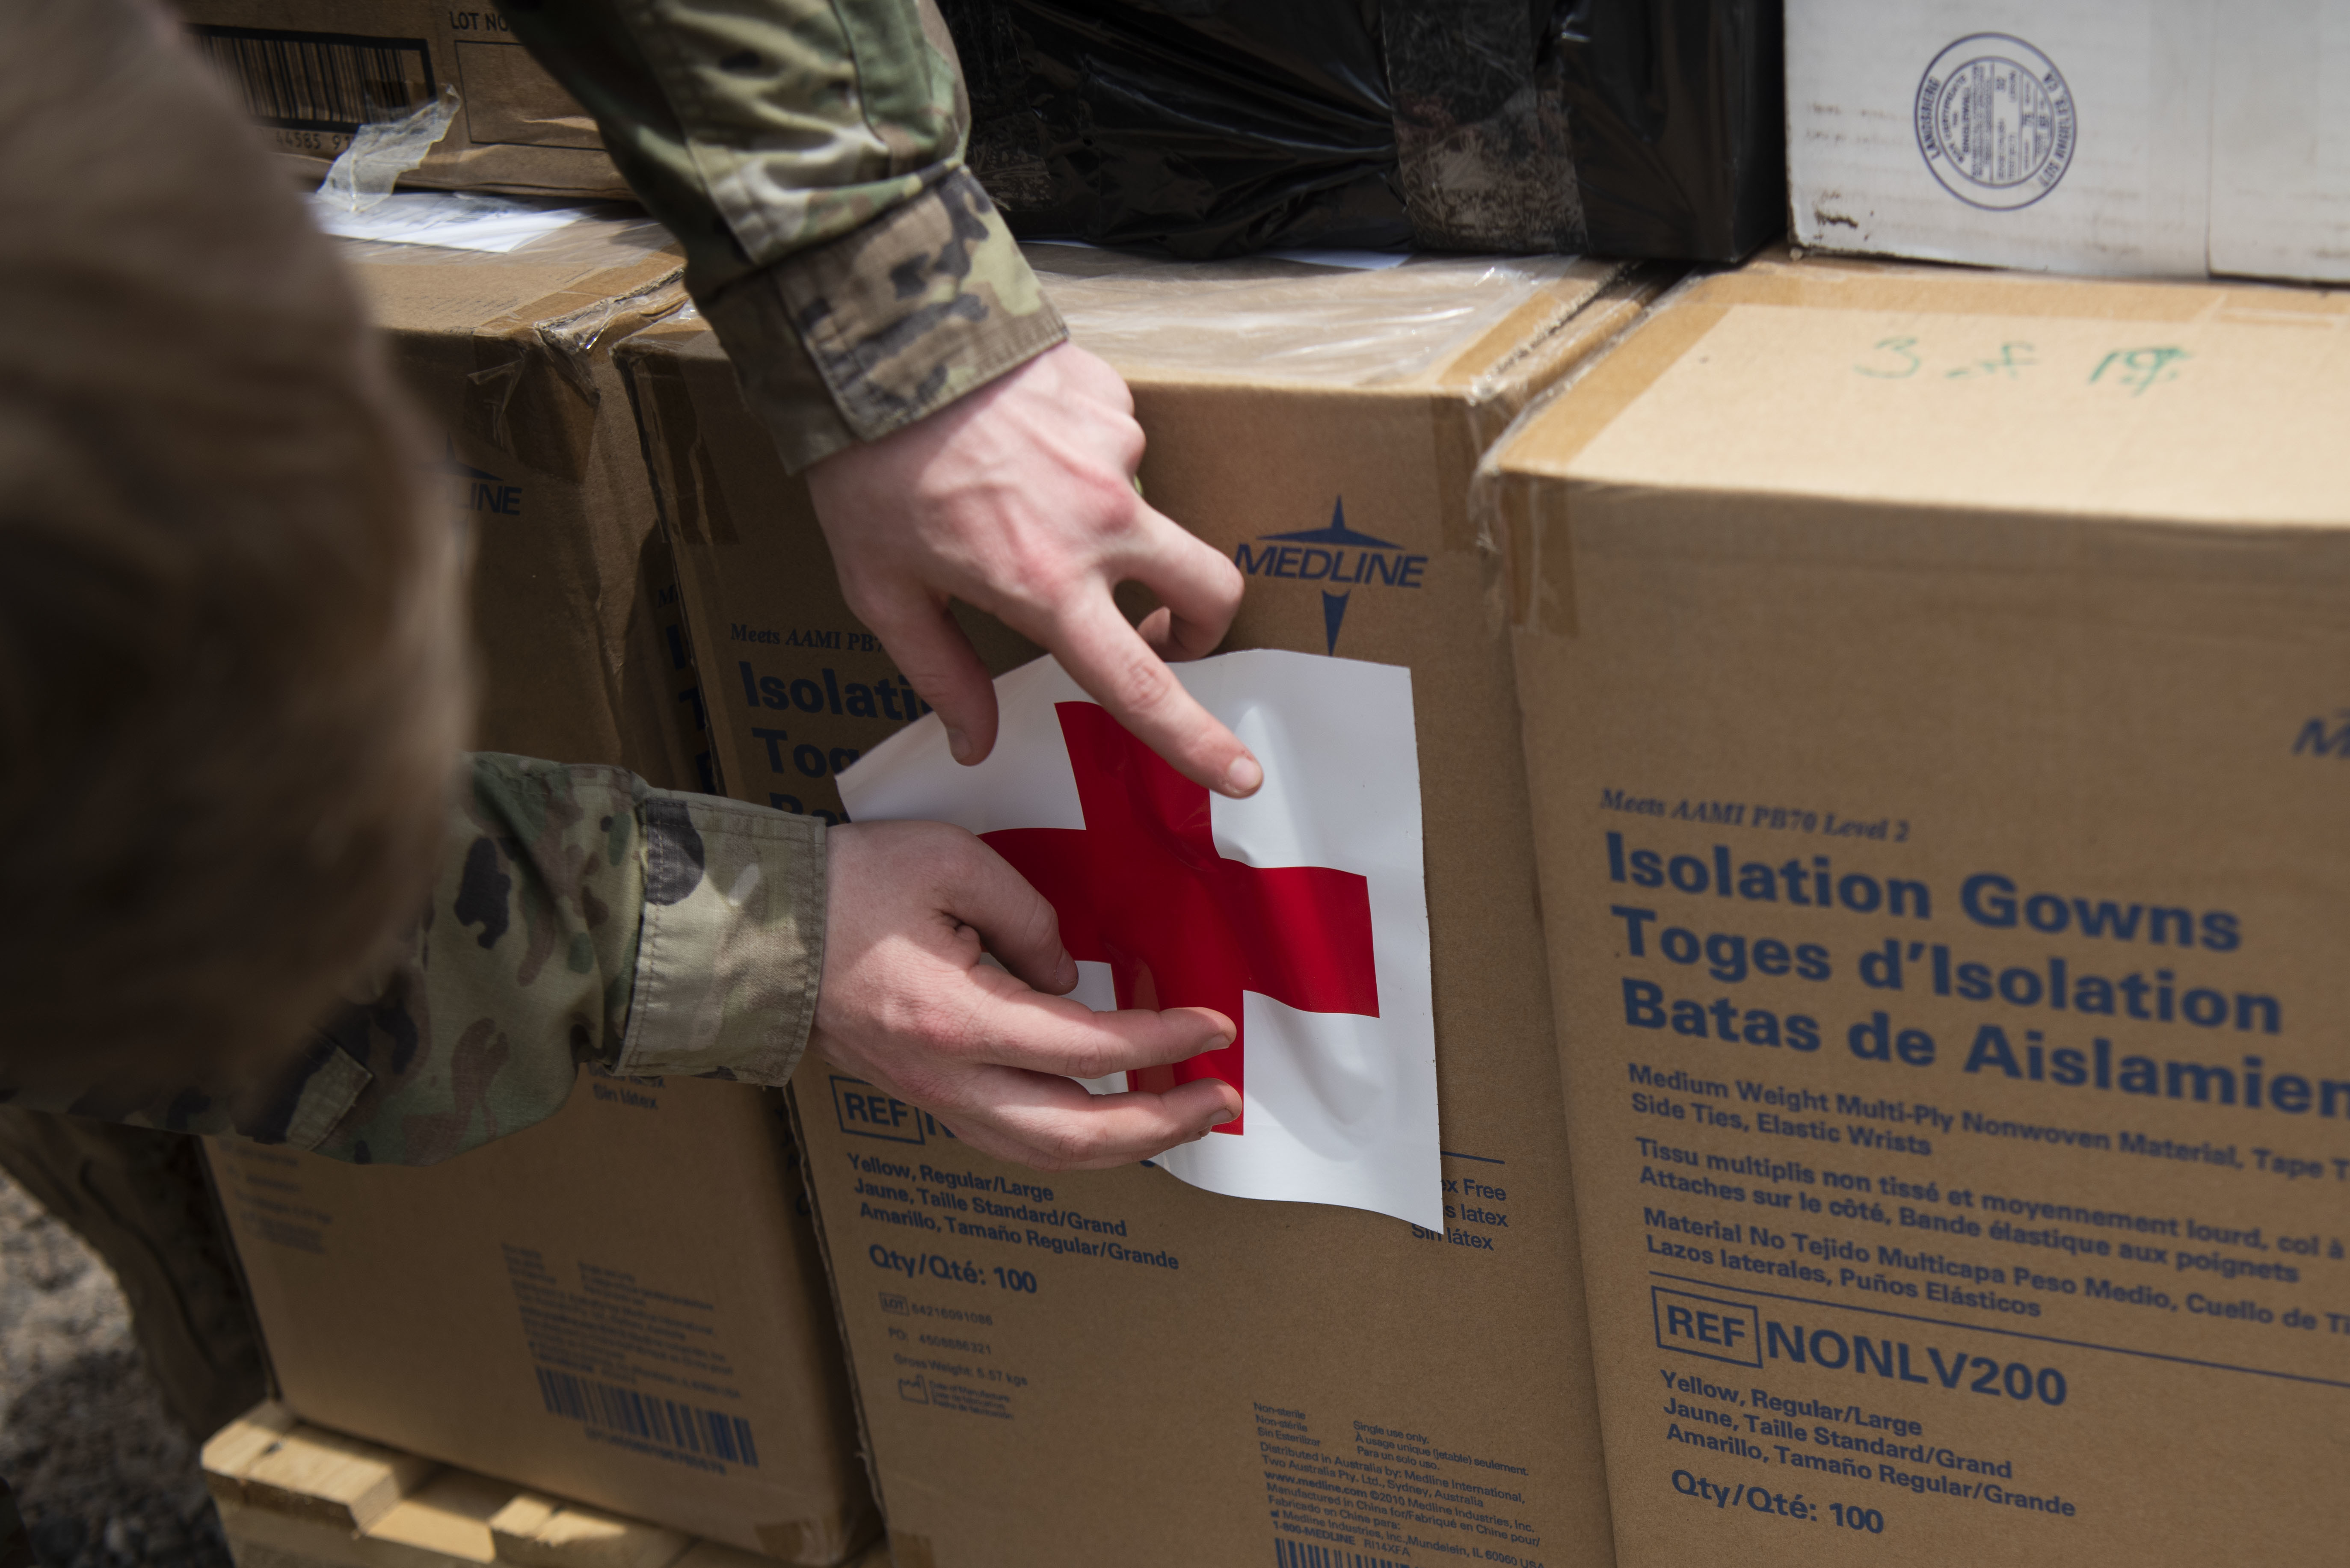 U.S. Army Capt. Ethan Betts, medical logistics (MEDLOG) officer for Combined Joint Task Force-Horn of Africa (CJTF-HOA), prepares a shipment of medical supplies at Camp Lemonnier, Djibouti, Apr. 24, 2020. Since the inception of the global COVID-19 pandemic, the MEDLOG team has shipped more than 7,000 surgical masks (facemasks), including 5,000 N95 respirators; 2,500 surgical  gowns; 150 pairs of reusable goggles; and 20,000 pairs of gloves to outstations throughout East Africa. (U.S. Air Force photo by Tech. Sgt. Ashley Nicole Taylor)